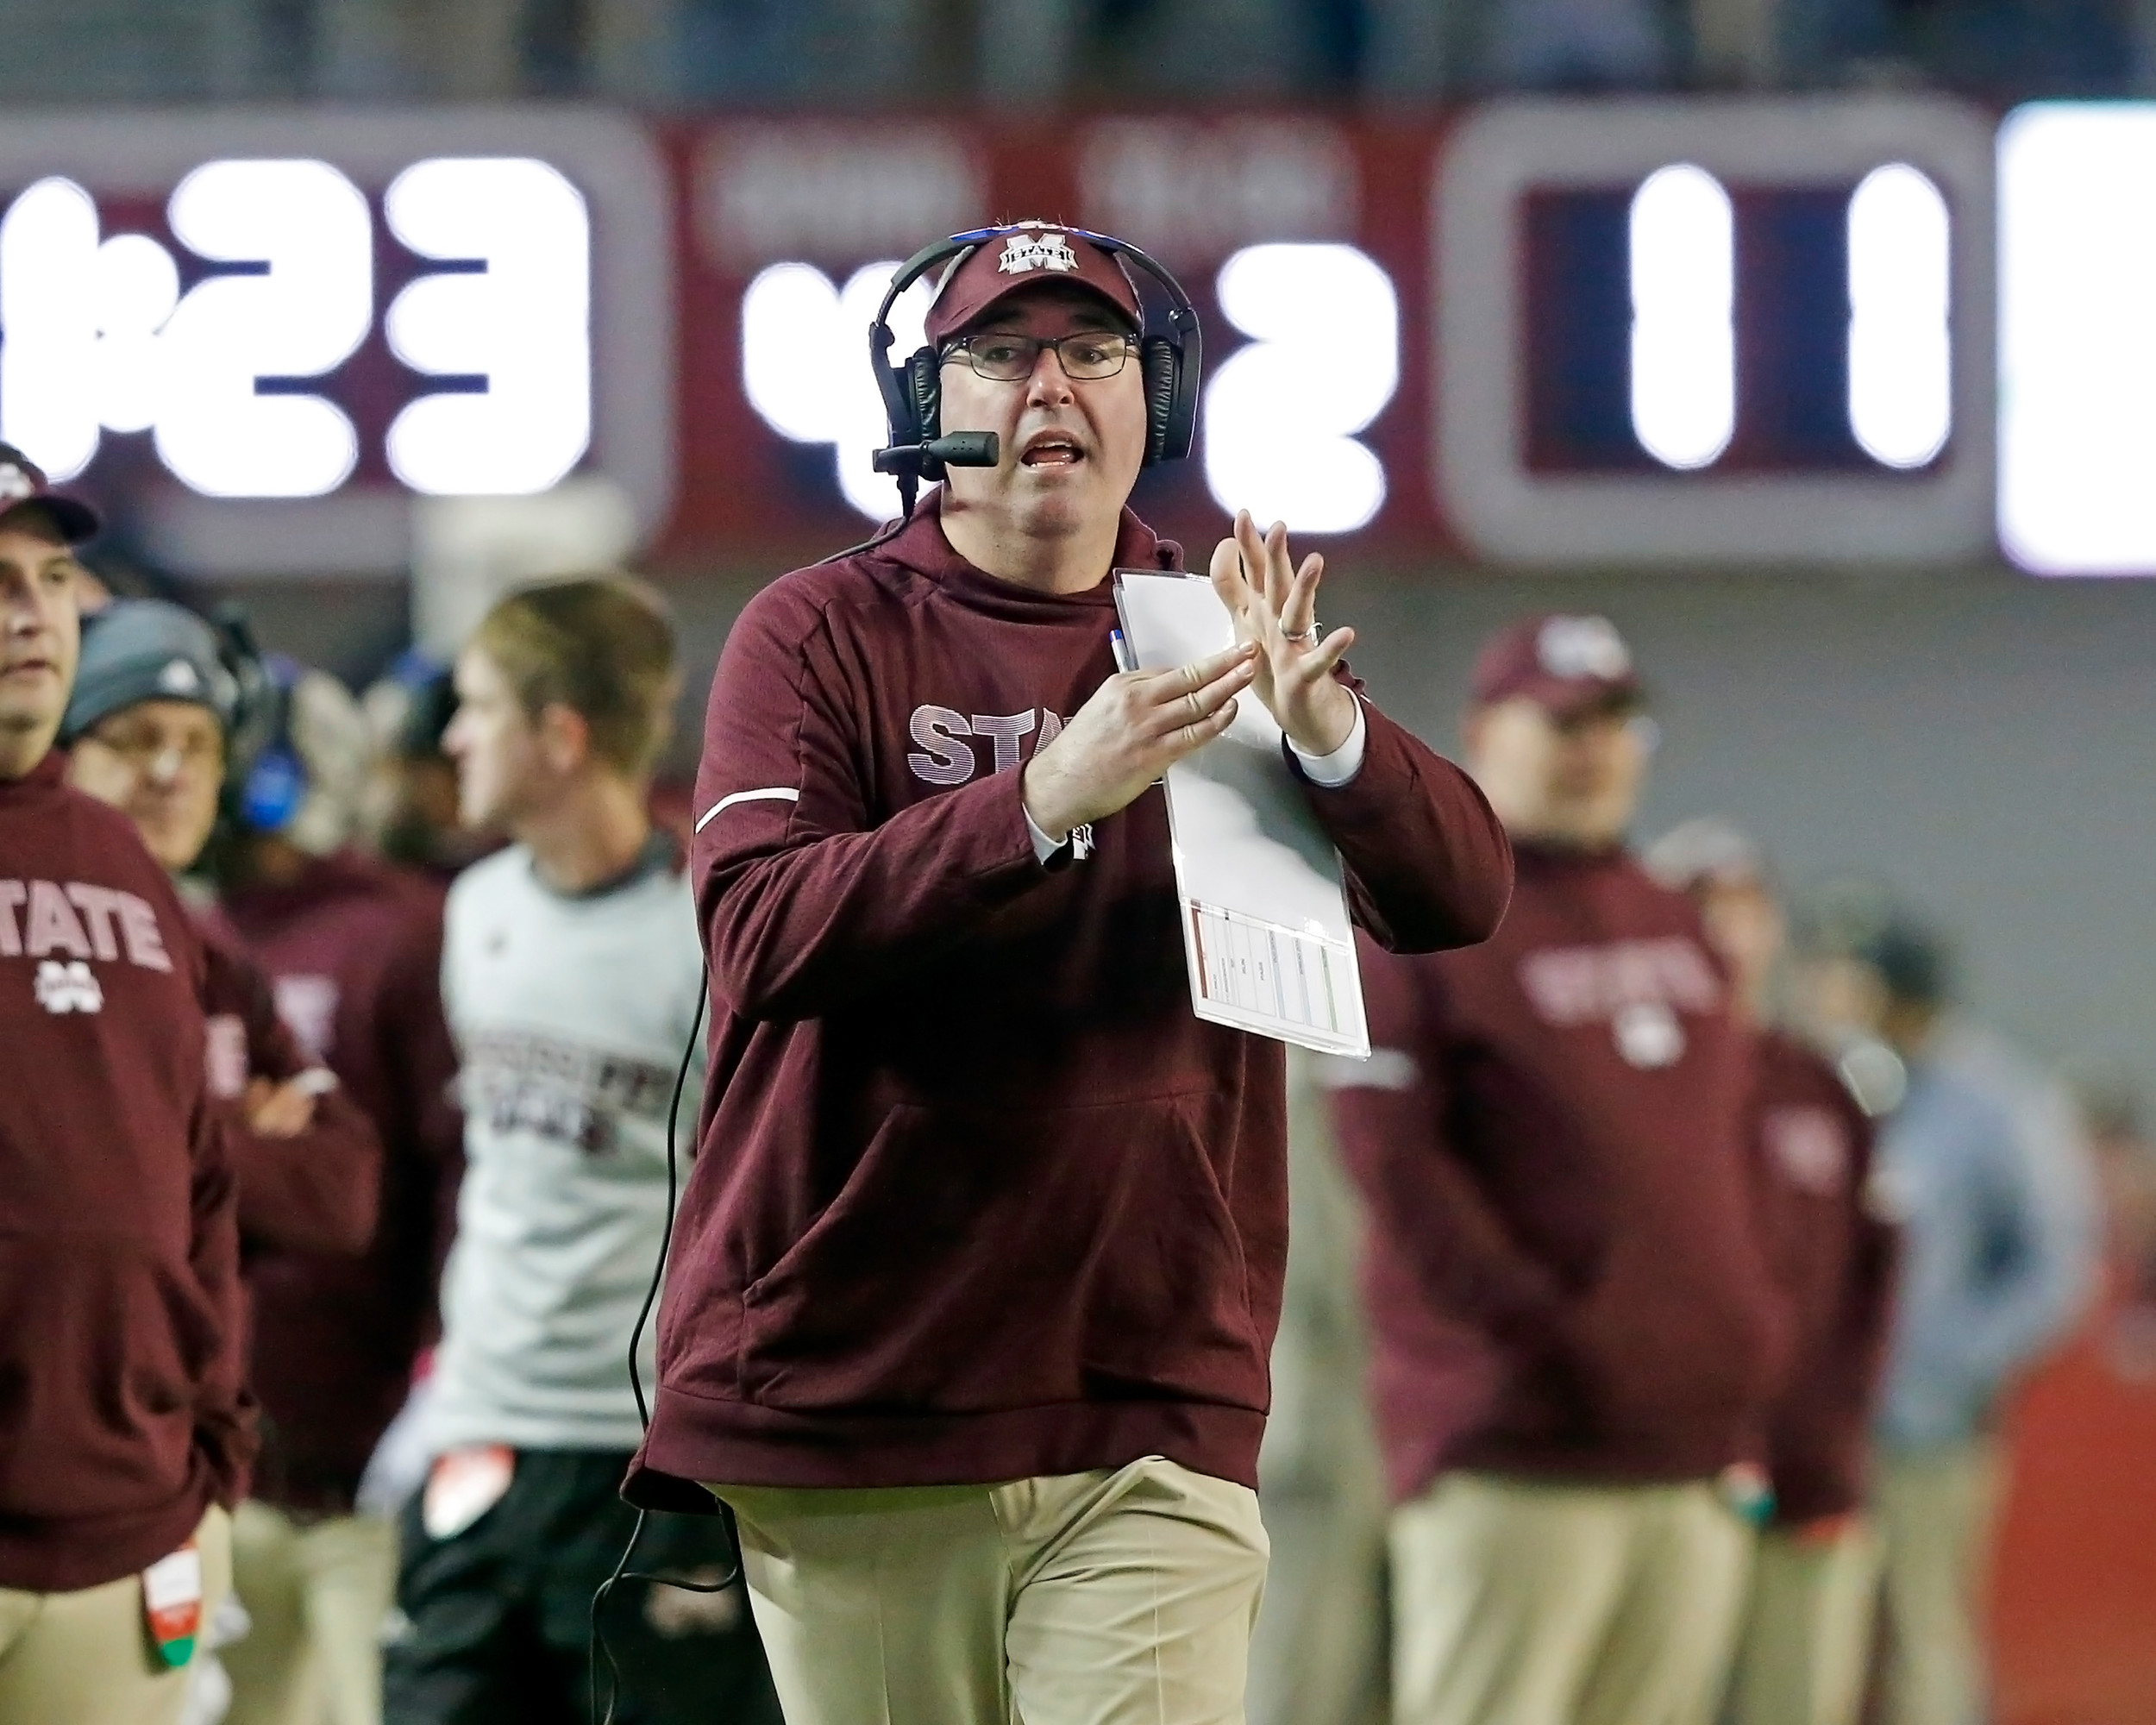 Mississippi State Bulldogs head coach Joe Moorhead calls a time out during the second half of the game between Mississippi State and the University of Alabama at Bryant-Denny Stadium in Tuscaloosa, Al. Credit: Jason Clark / Daily Mountain Eagle